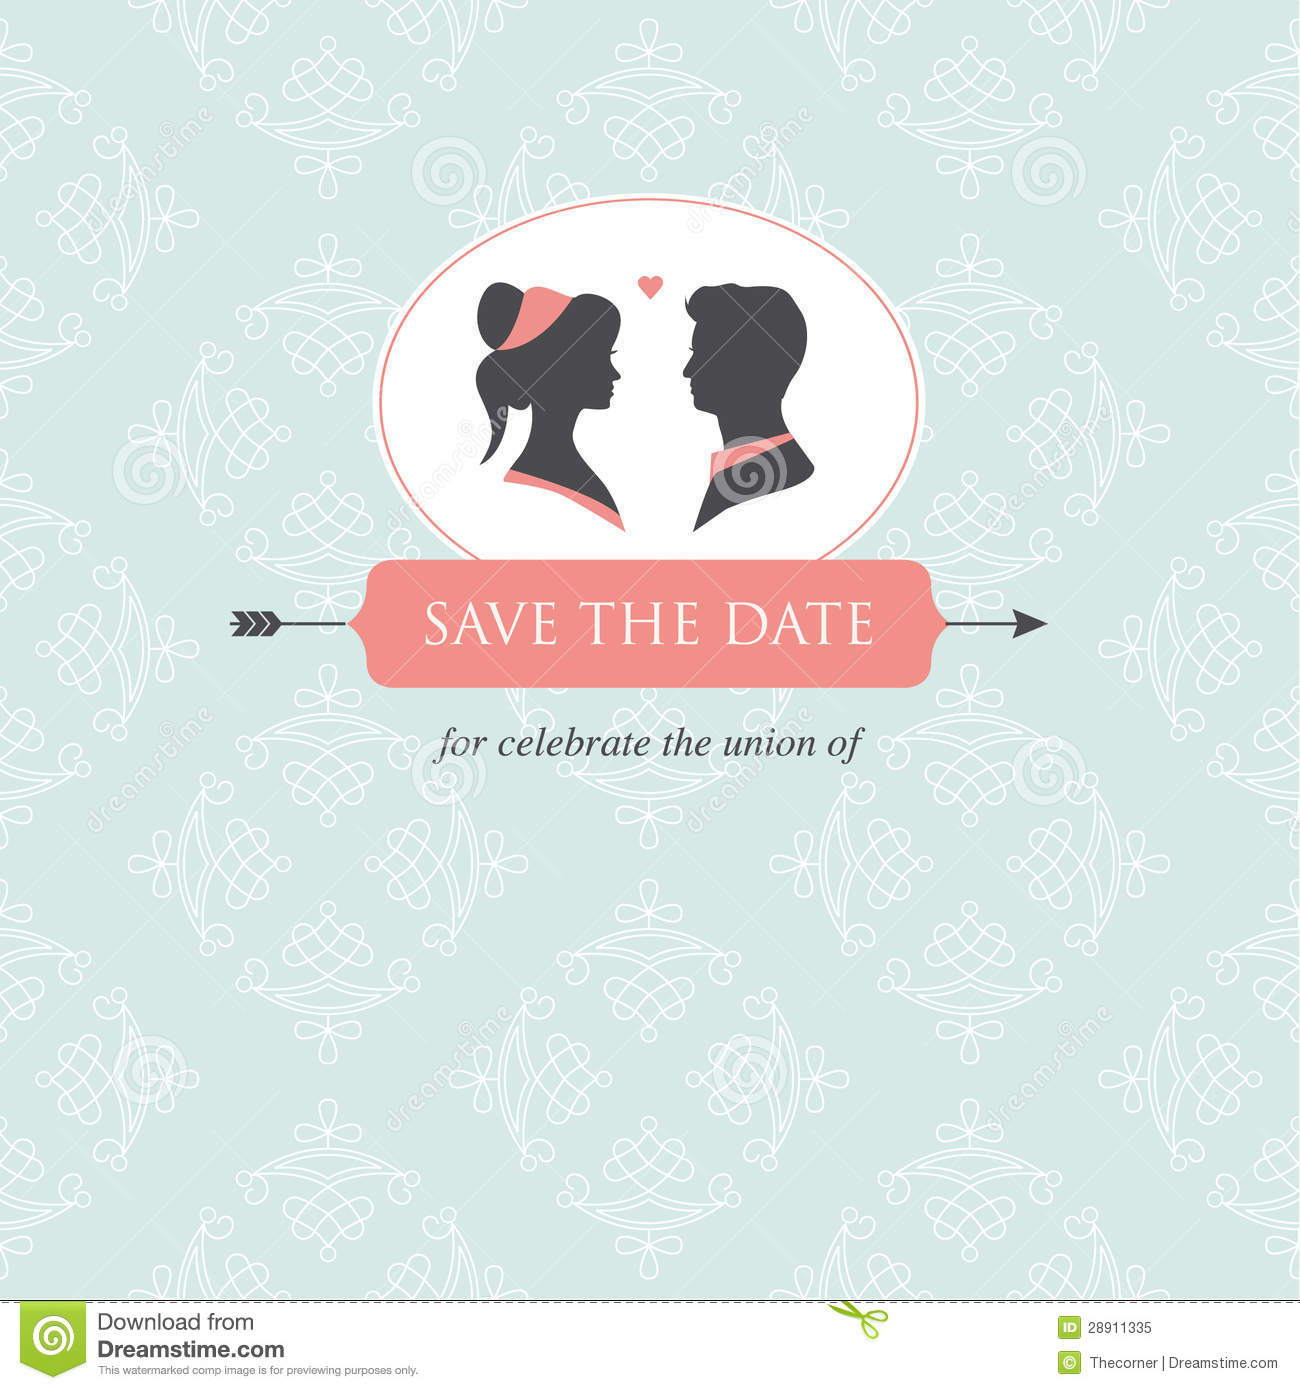 Free Invitation Card Templates Free Invitation Cards Templates – Free Wedding Invitation Cards Templates